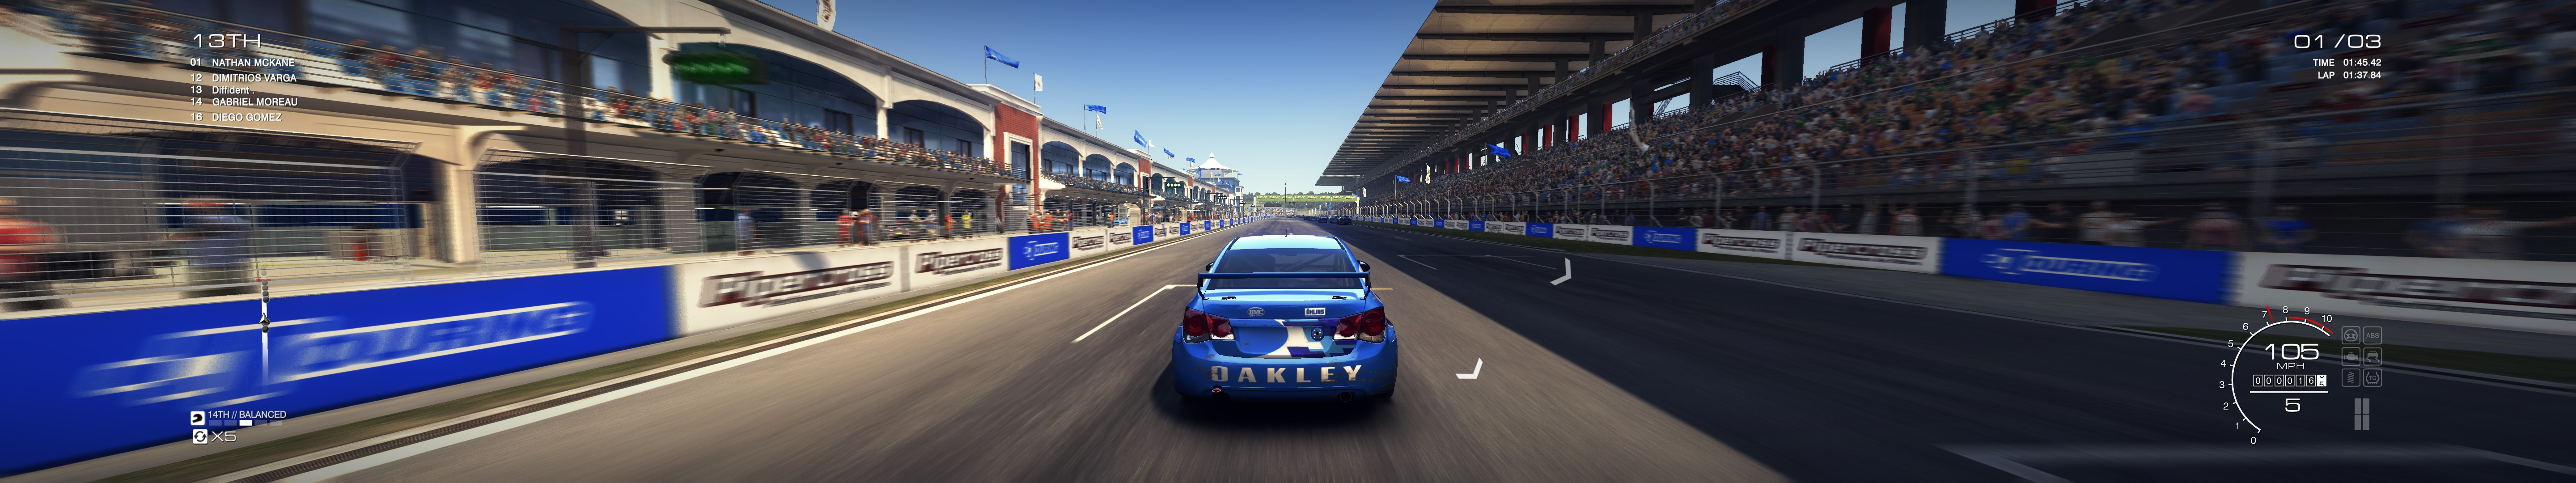 Click image for larger version  Name:gridautosport.jpg Views:12 Size:1.09 MB ID:219690